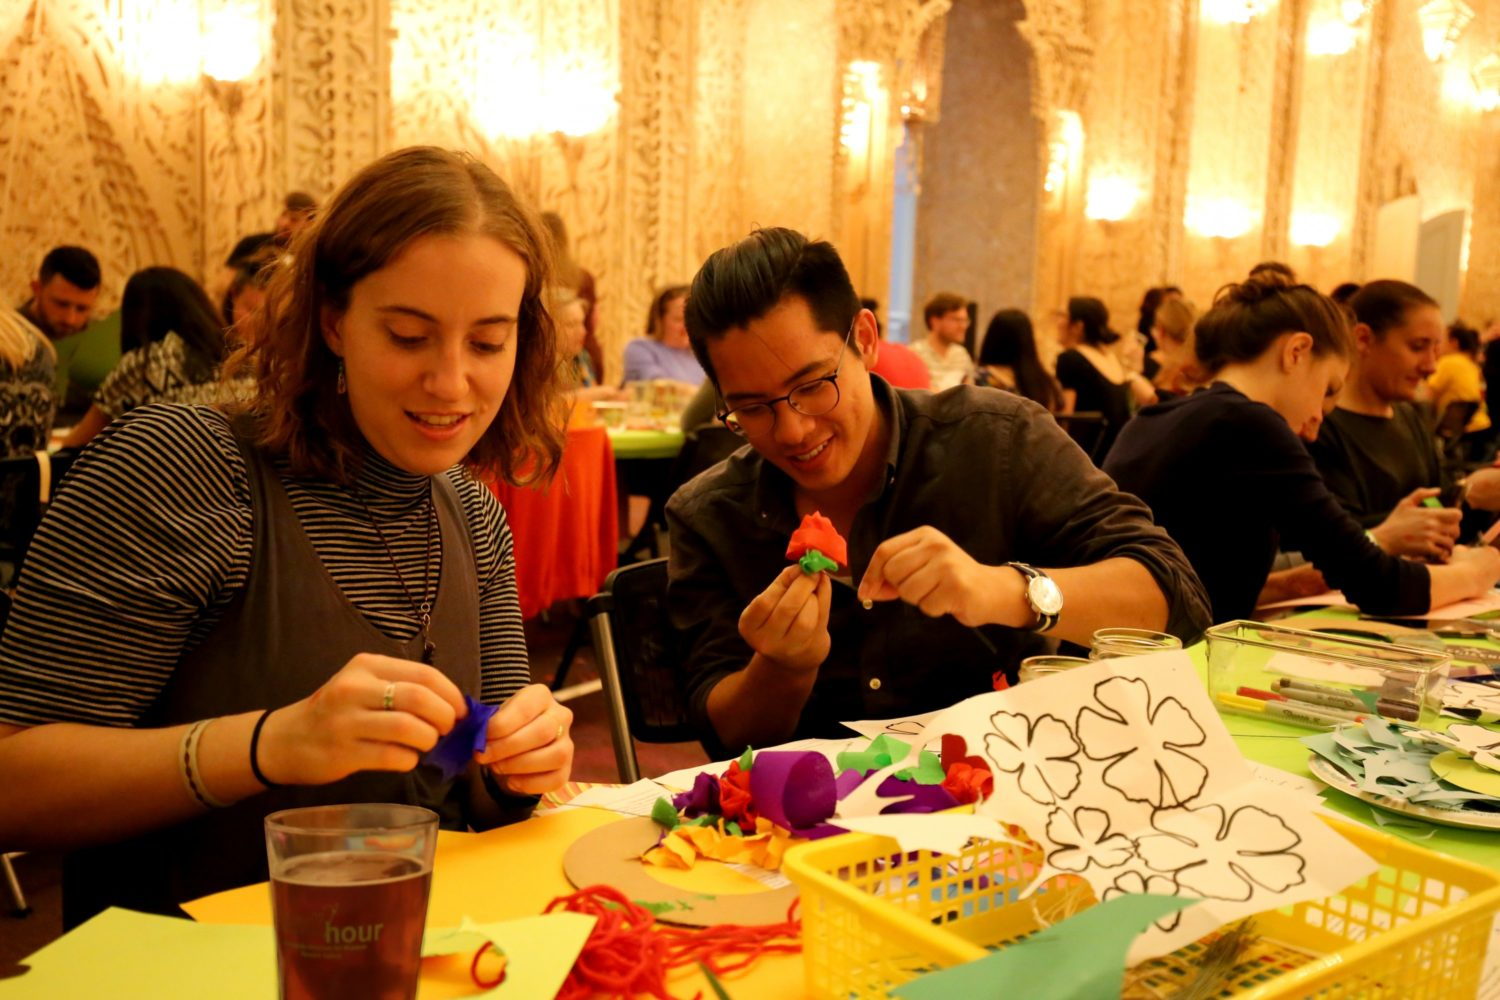 The Renwick gallery is hosting a Handi-Hour with basketmaking and brews. Photograph by Libby Weiler, courtesy of the Smithsonian American Art Museum.